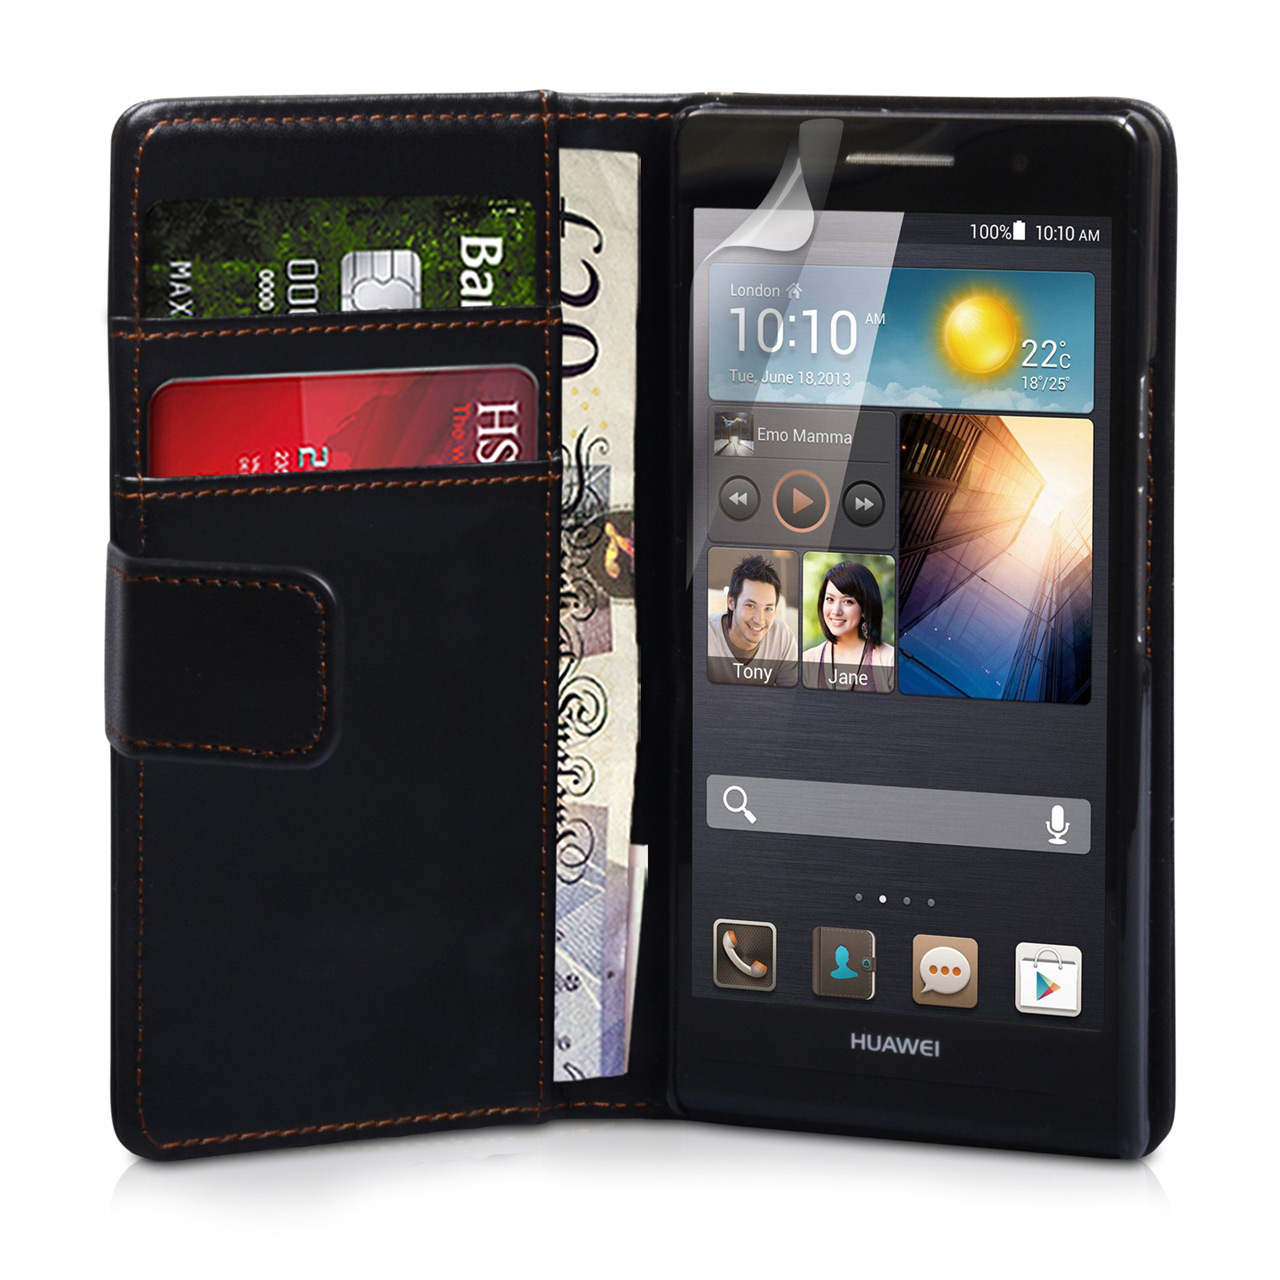 YouSave Accessories Huawei Ascend P6 Black Leather Effect Wallet Case